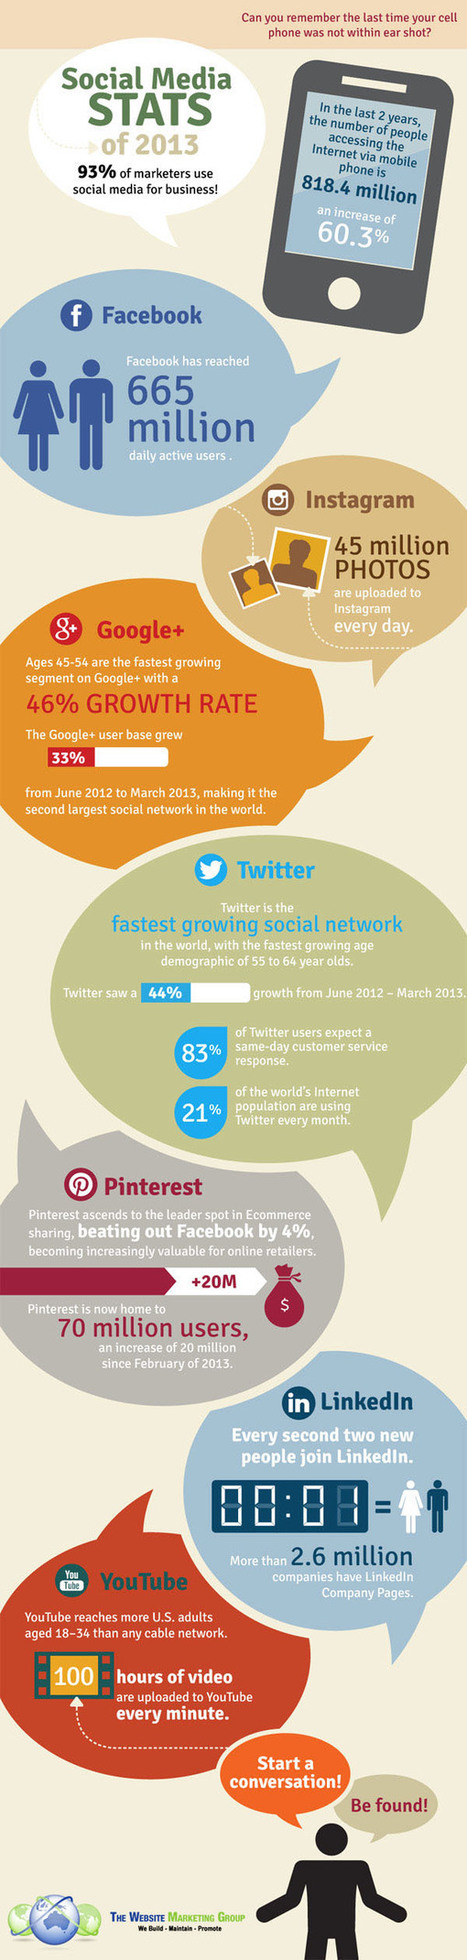 Social Media Infographic 2013 : Which platform is growing the fastest? | Digital Marketing Fever | Scoop.it